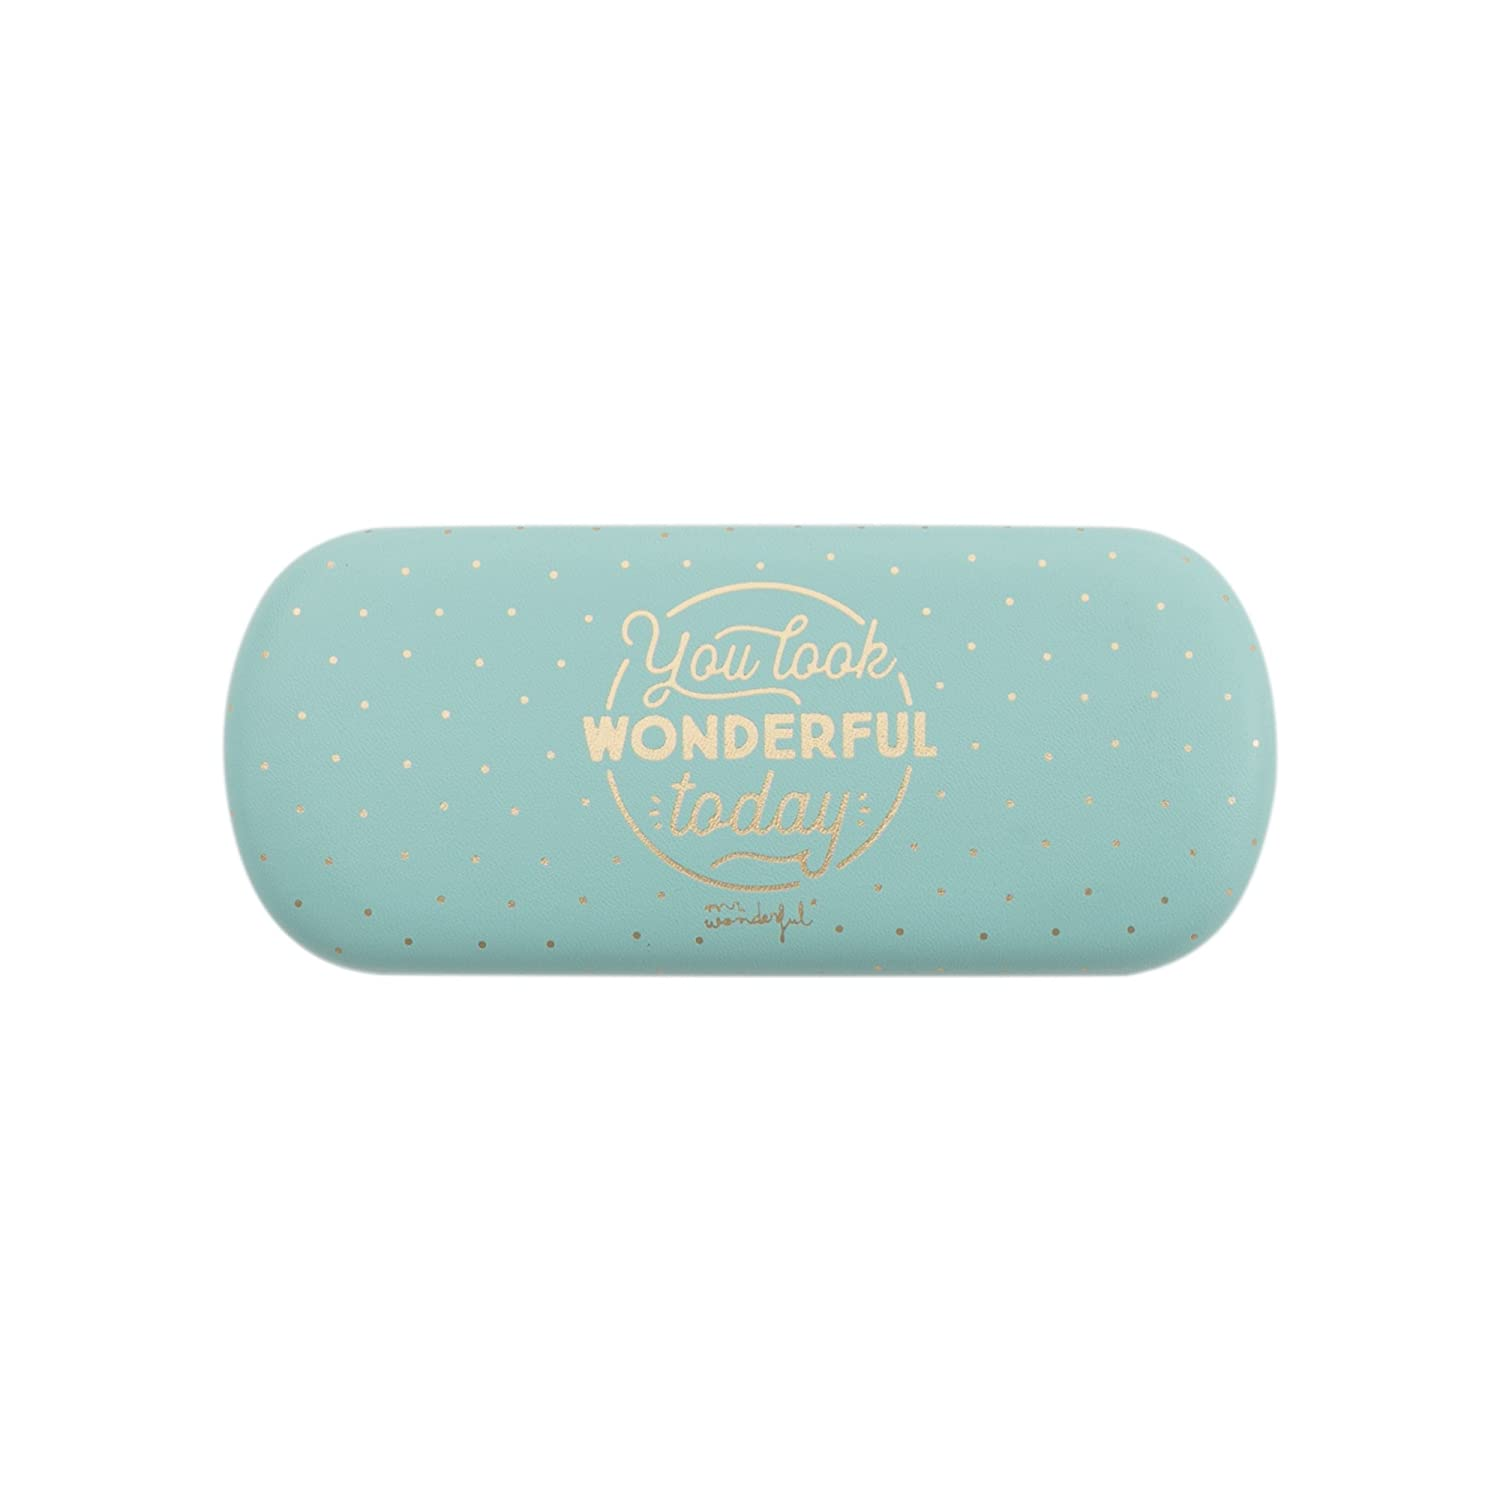 Mr Wonderful Portacravatte da viaggio, multicolore (Multicolore) - WOA08626FR Mr. Wonderful